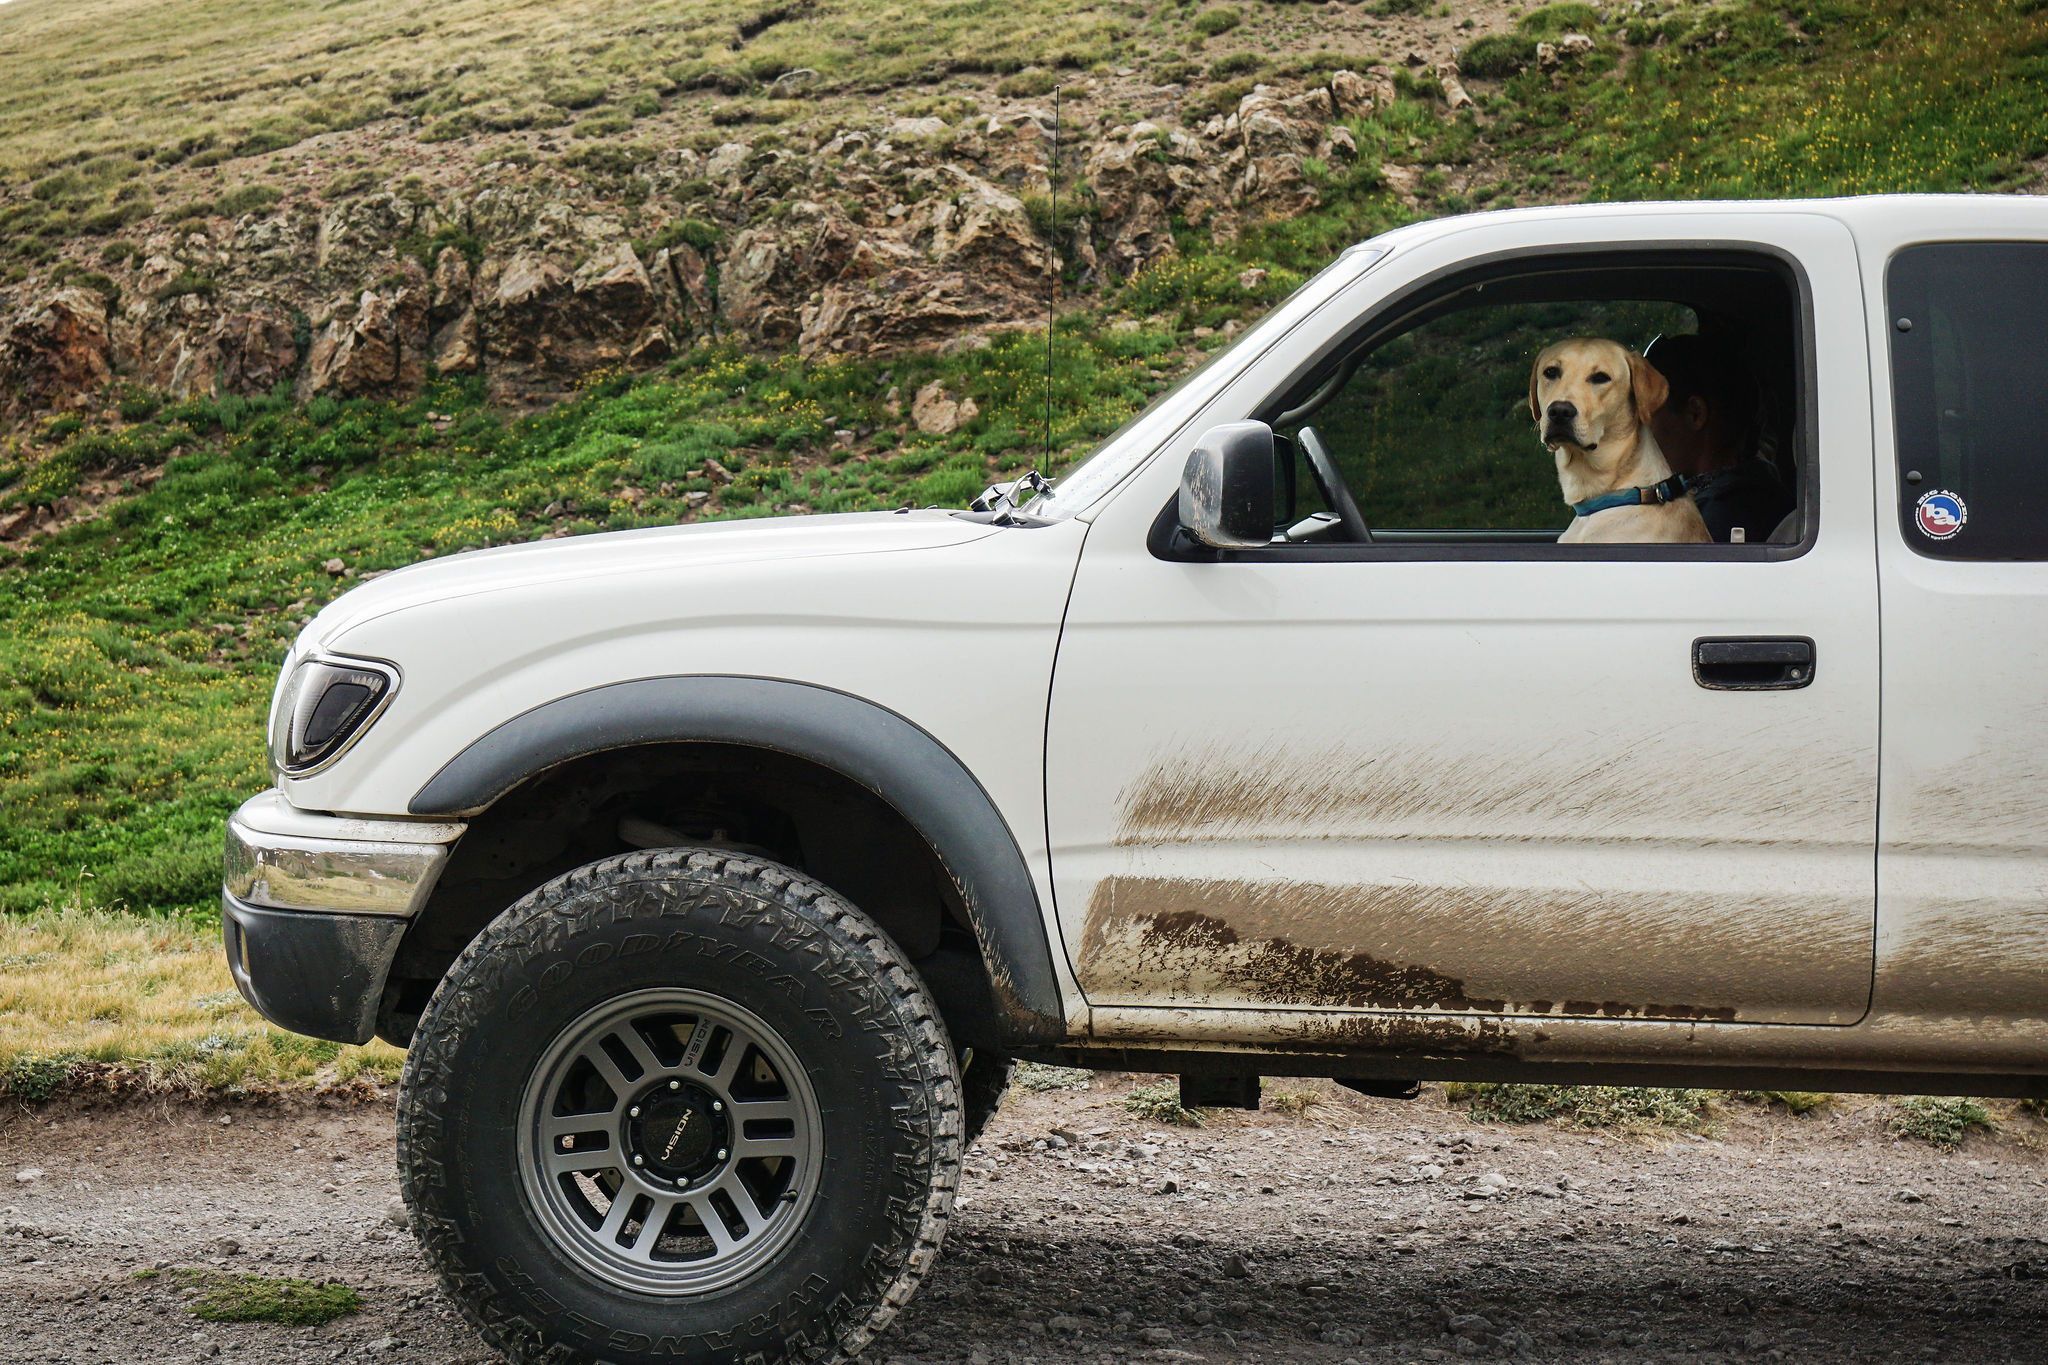 4-PAW Drive - this truck has that